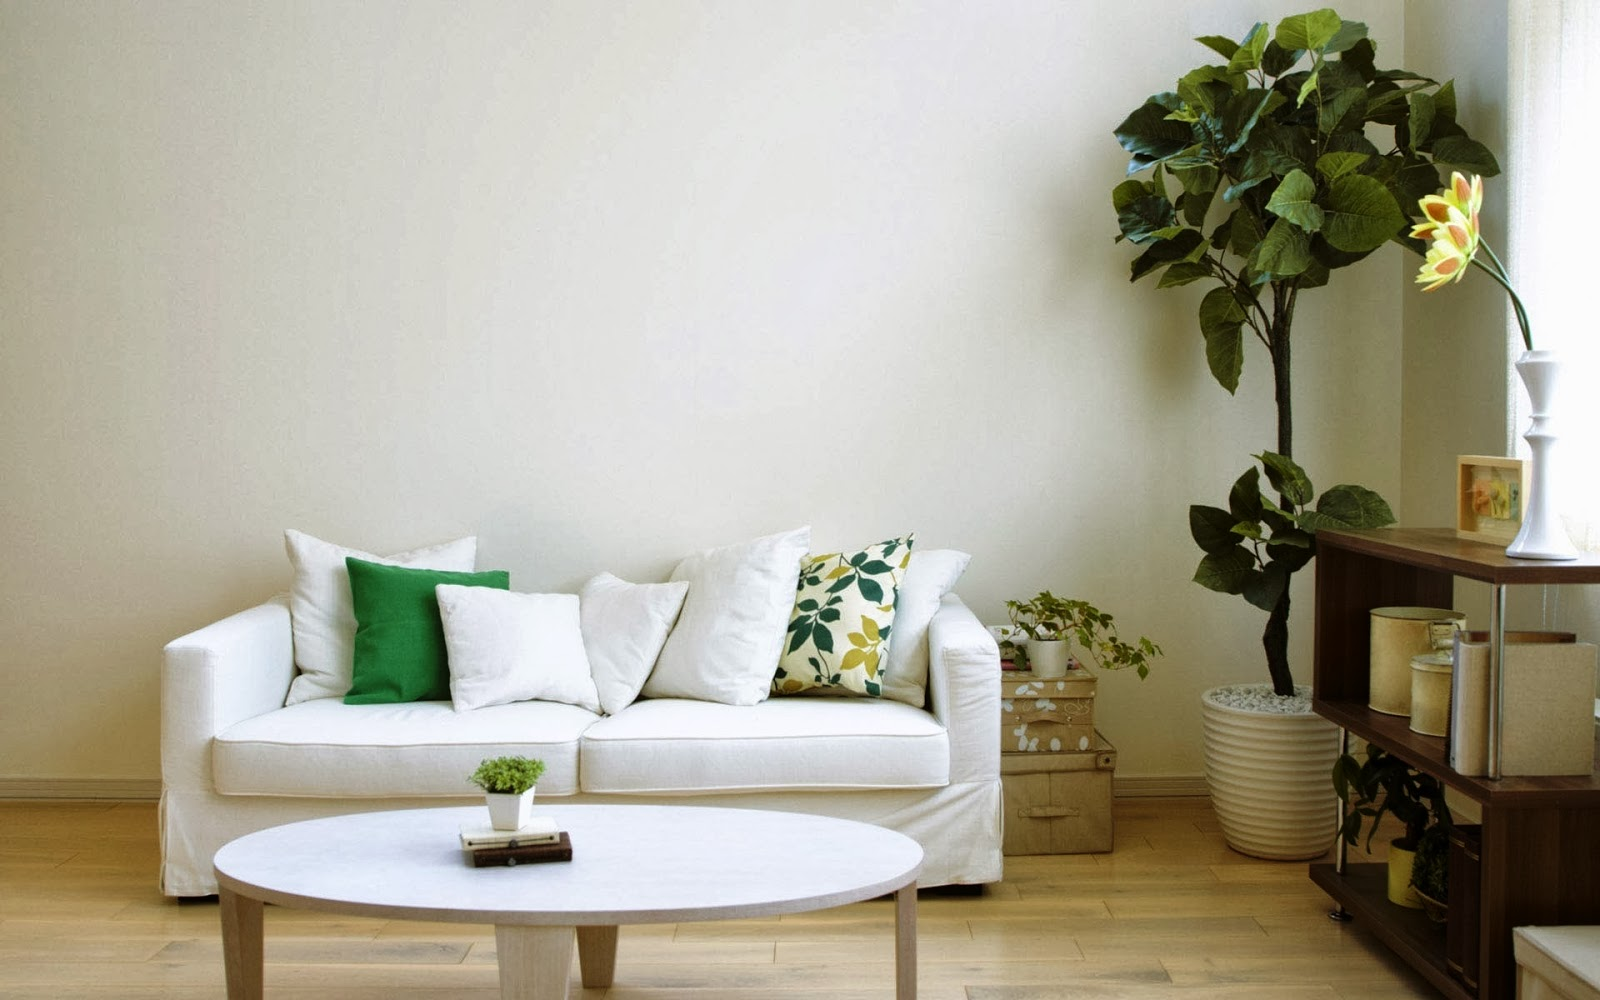 Decorative Plant With White Pot As The Corner Decoration A Sofa Pillows And